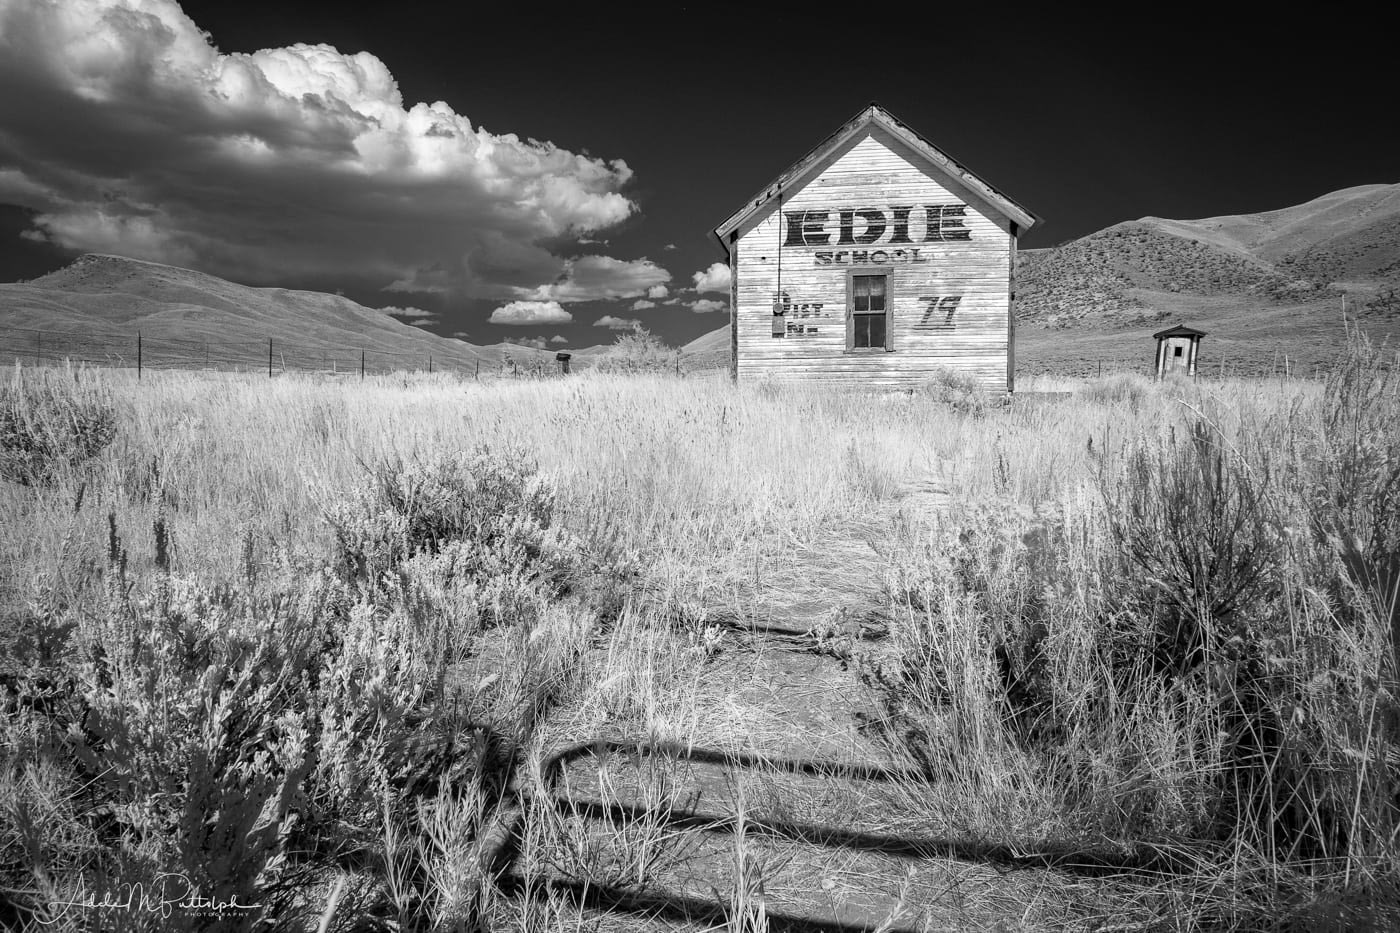 A black and white infrared photograph of Edie School shot on a back road in Idaho.